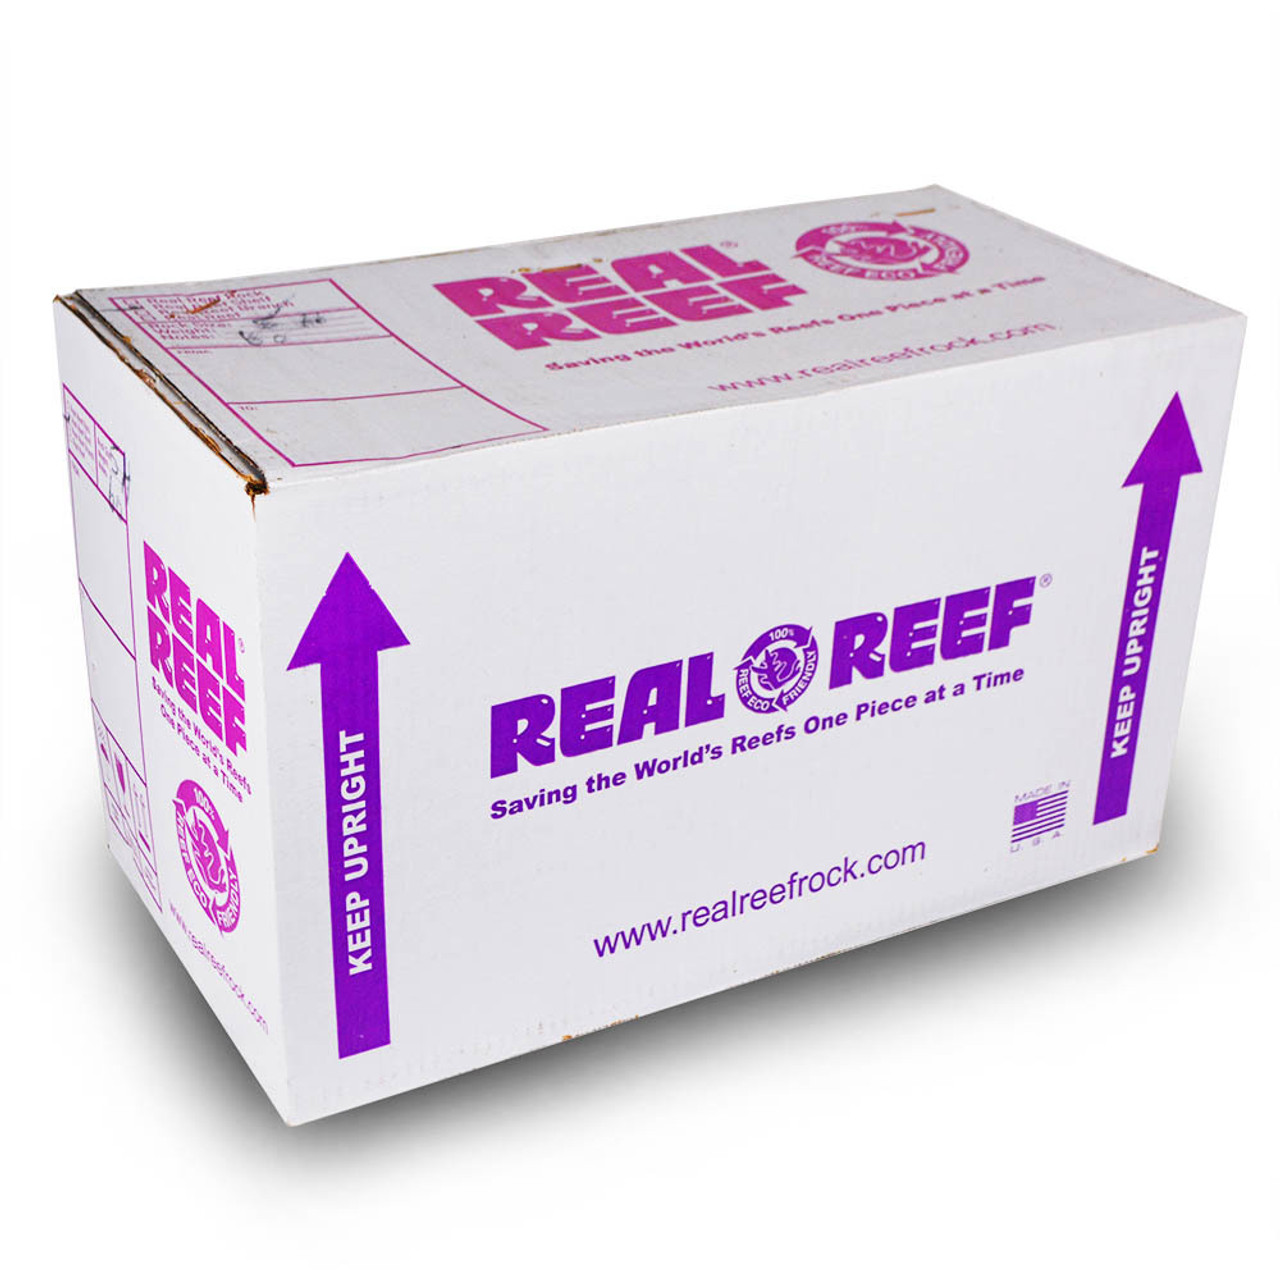 Real Reef Small Size  60# Box $5.99 Lb.